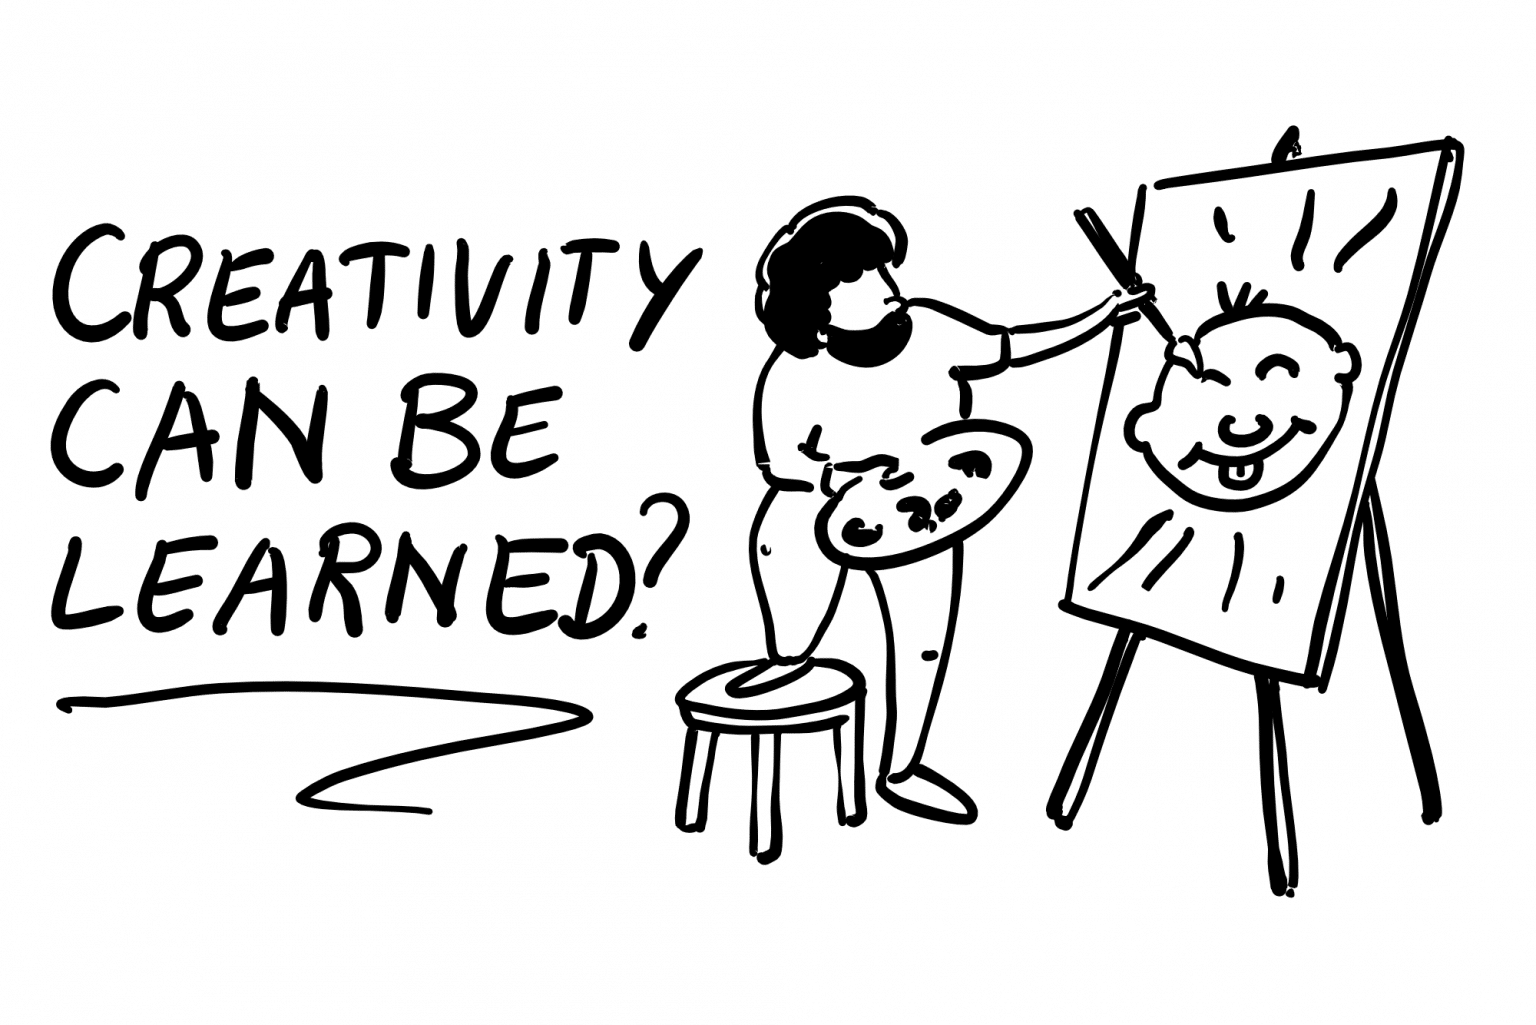 Can creativity be learned